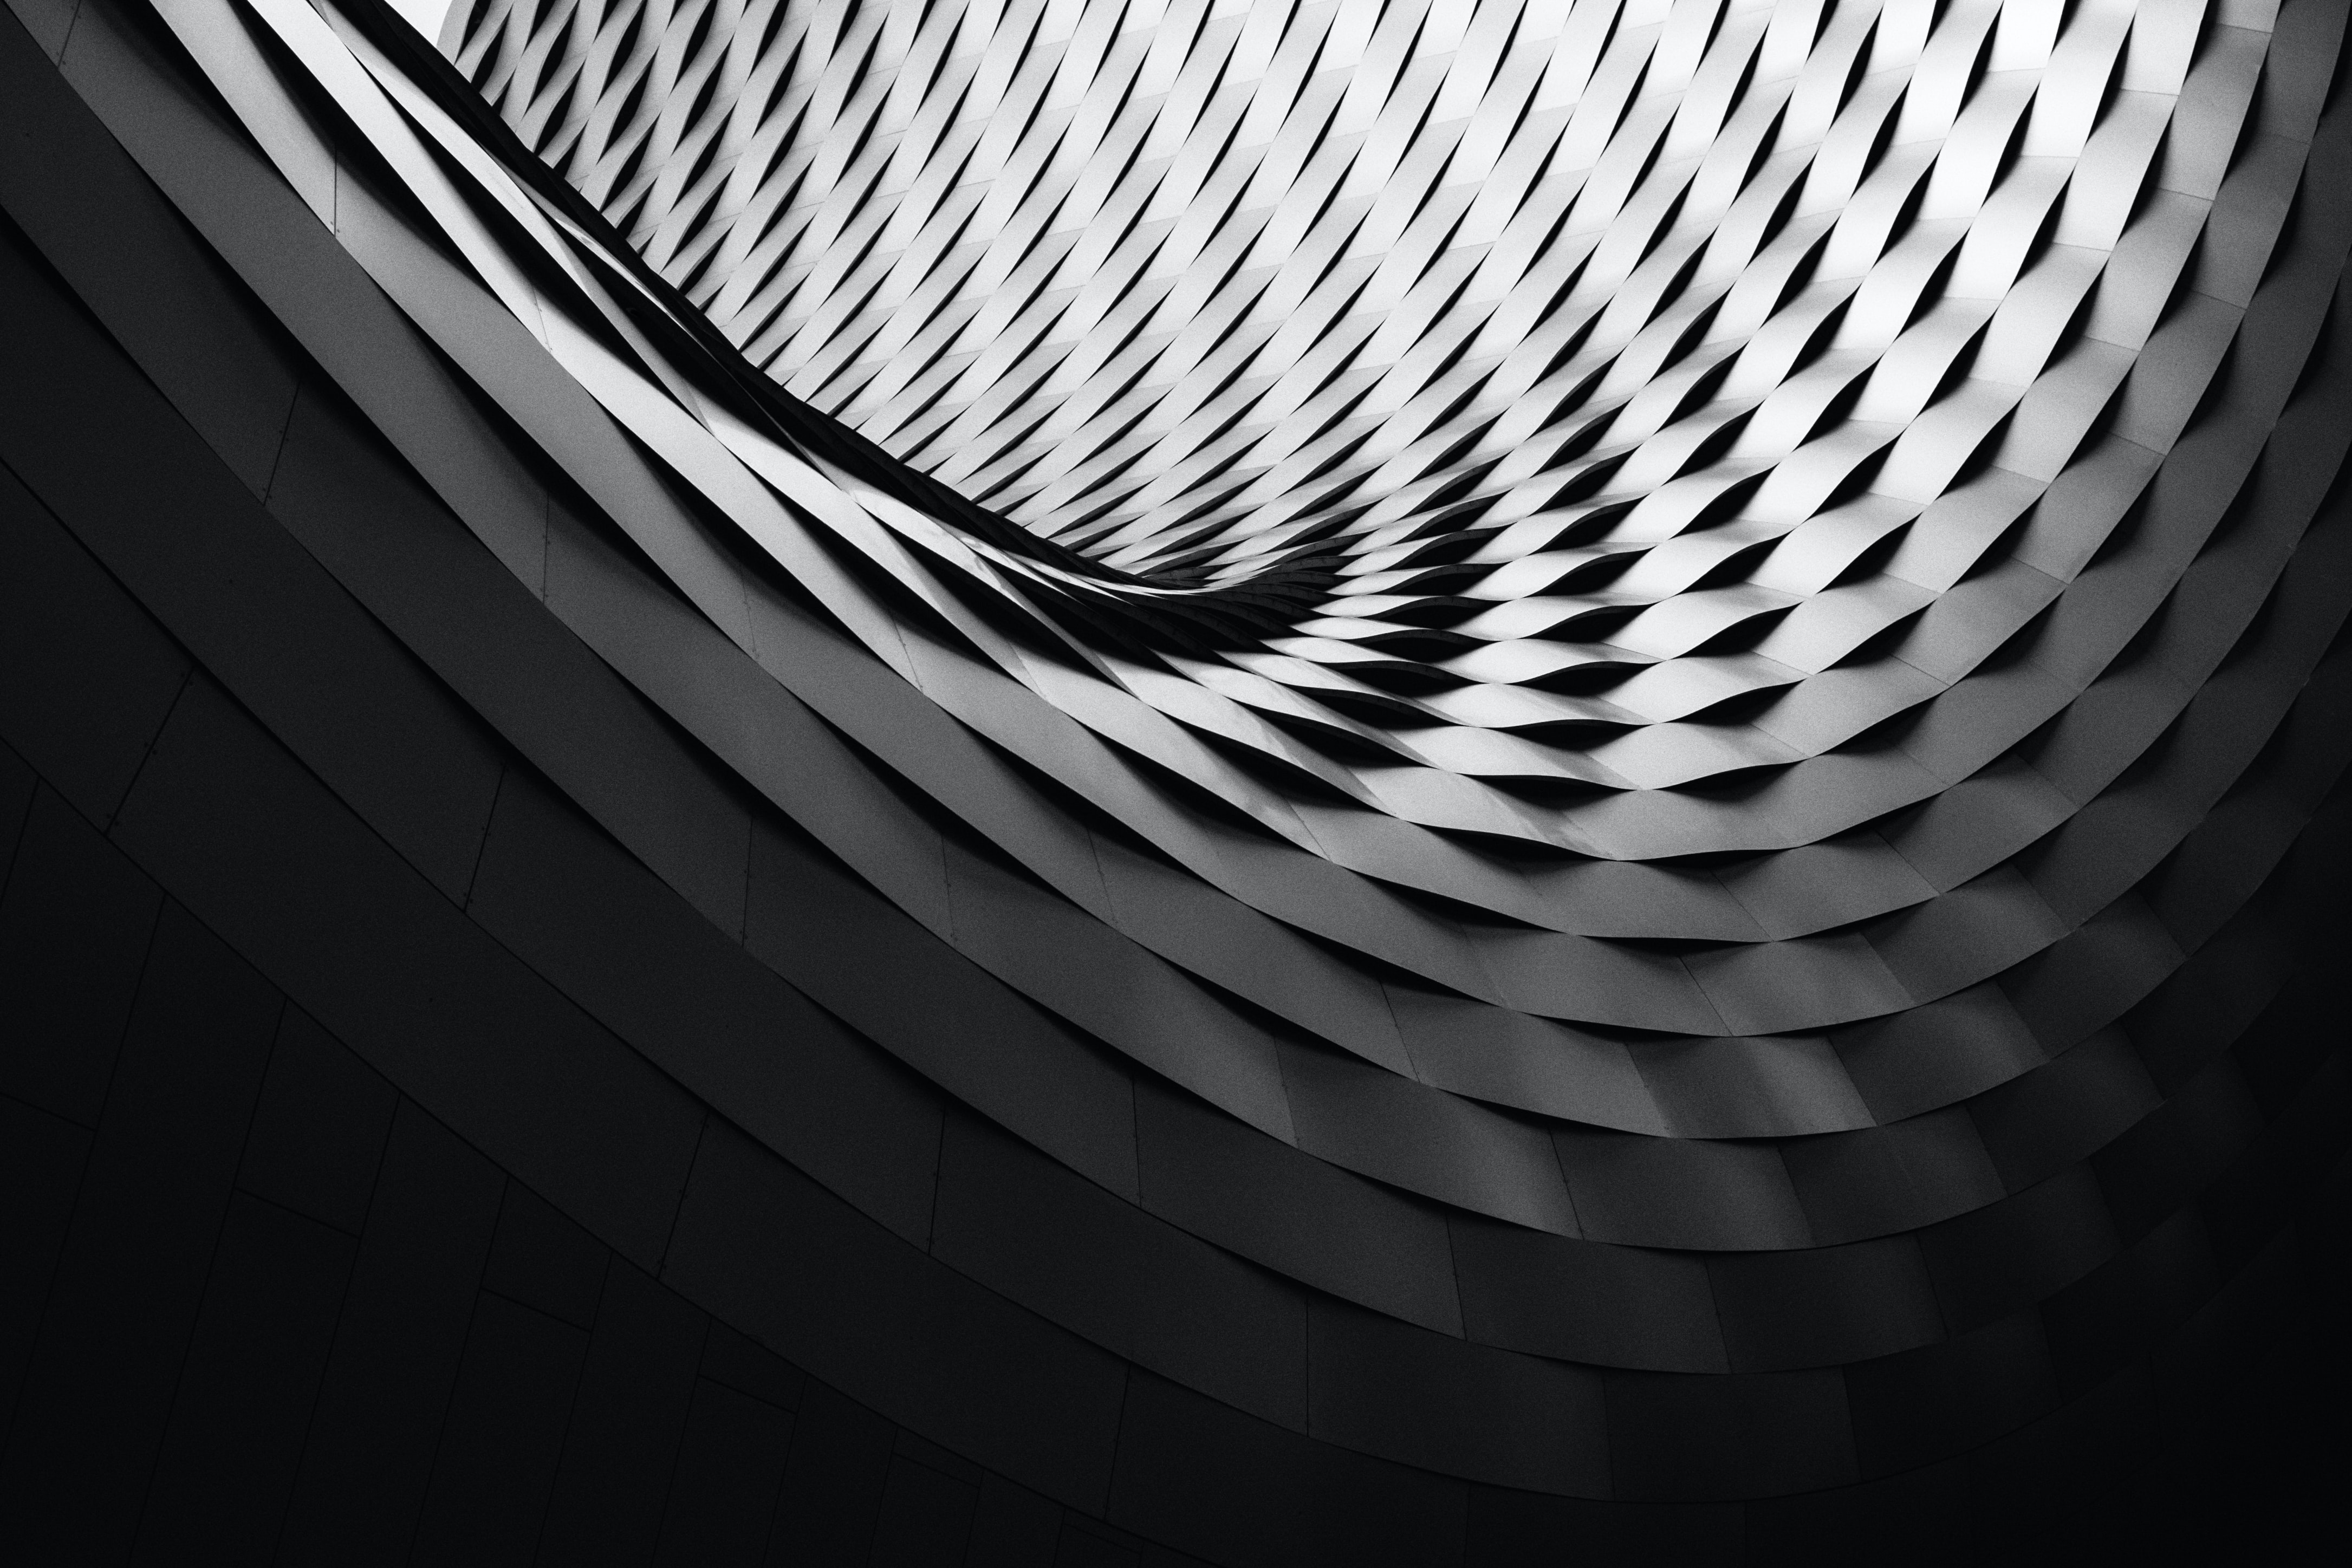 grayscale spiral wallpaper